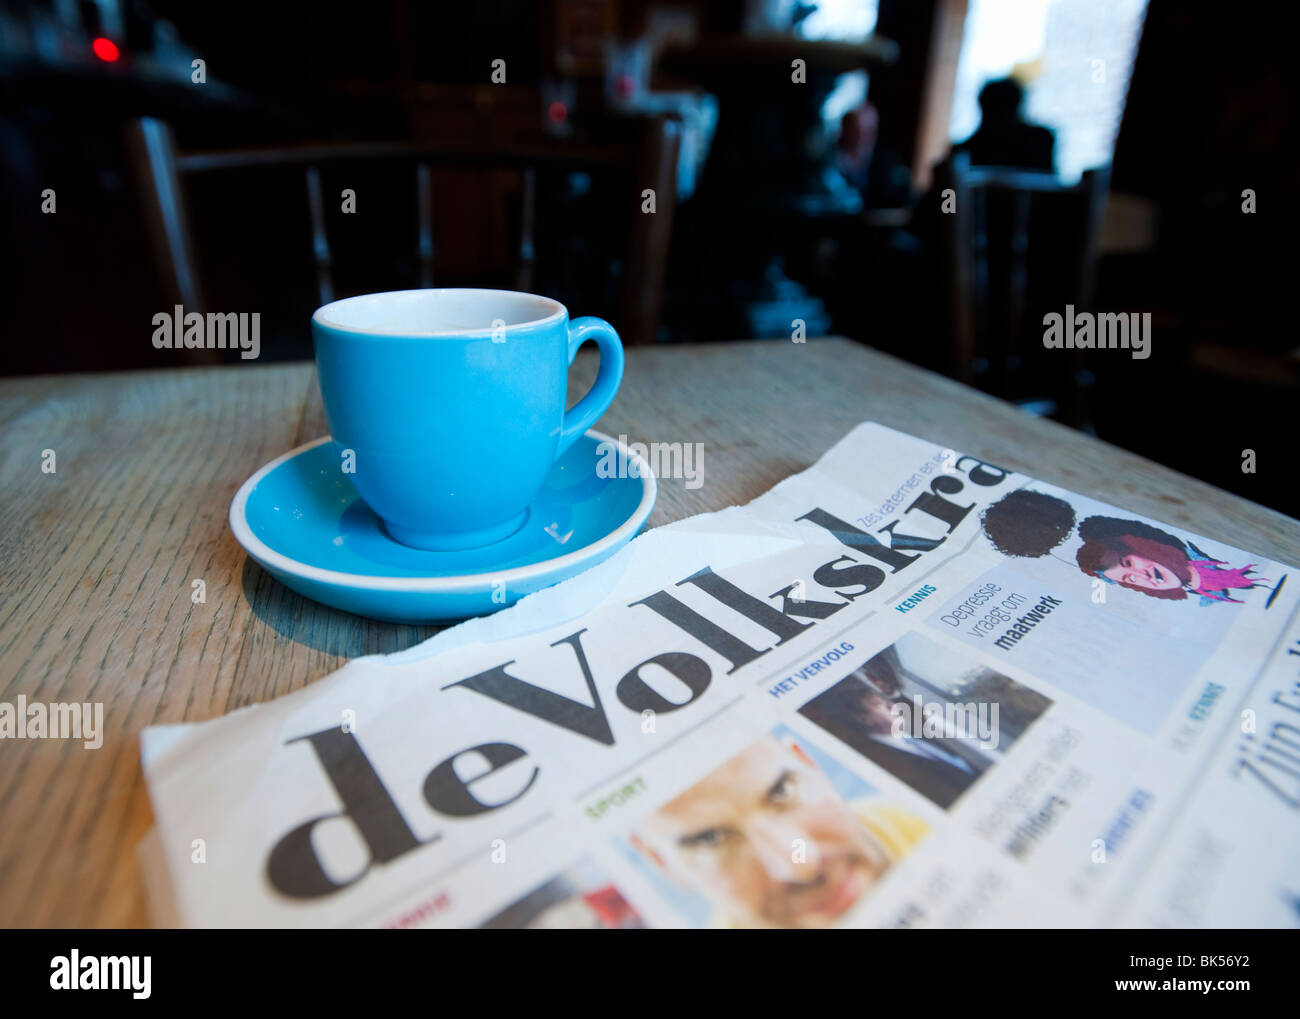 Detail of interior of brown cafe or traditional pub in Amsterdam Netherlands - Stock Image